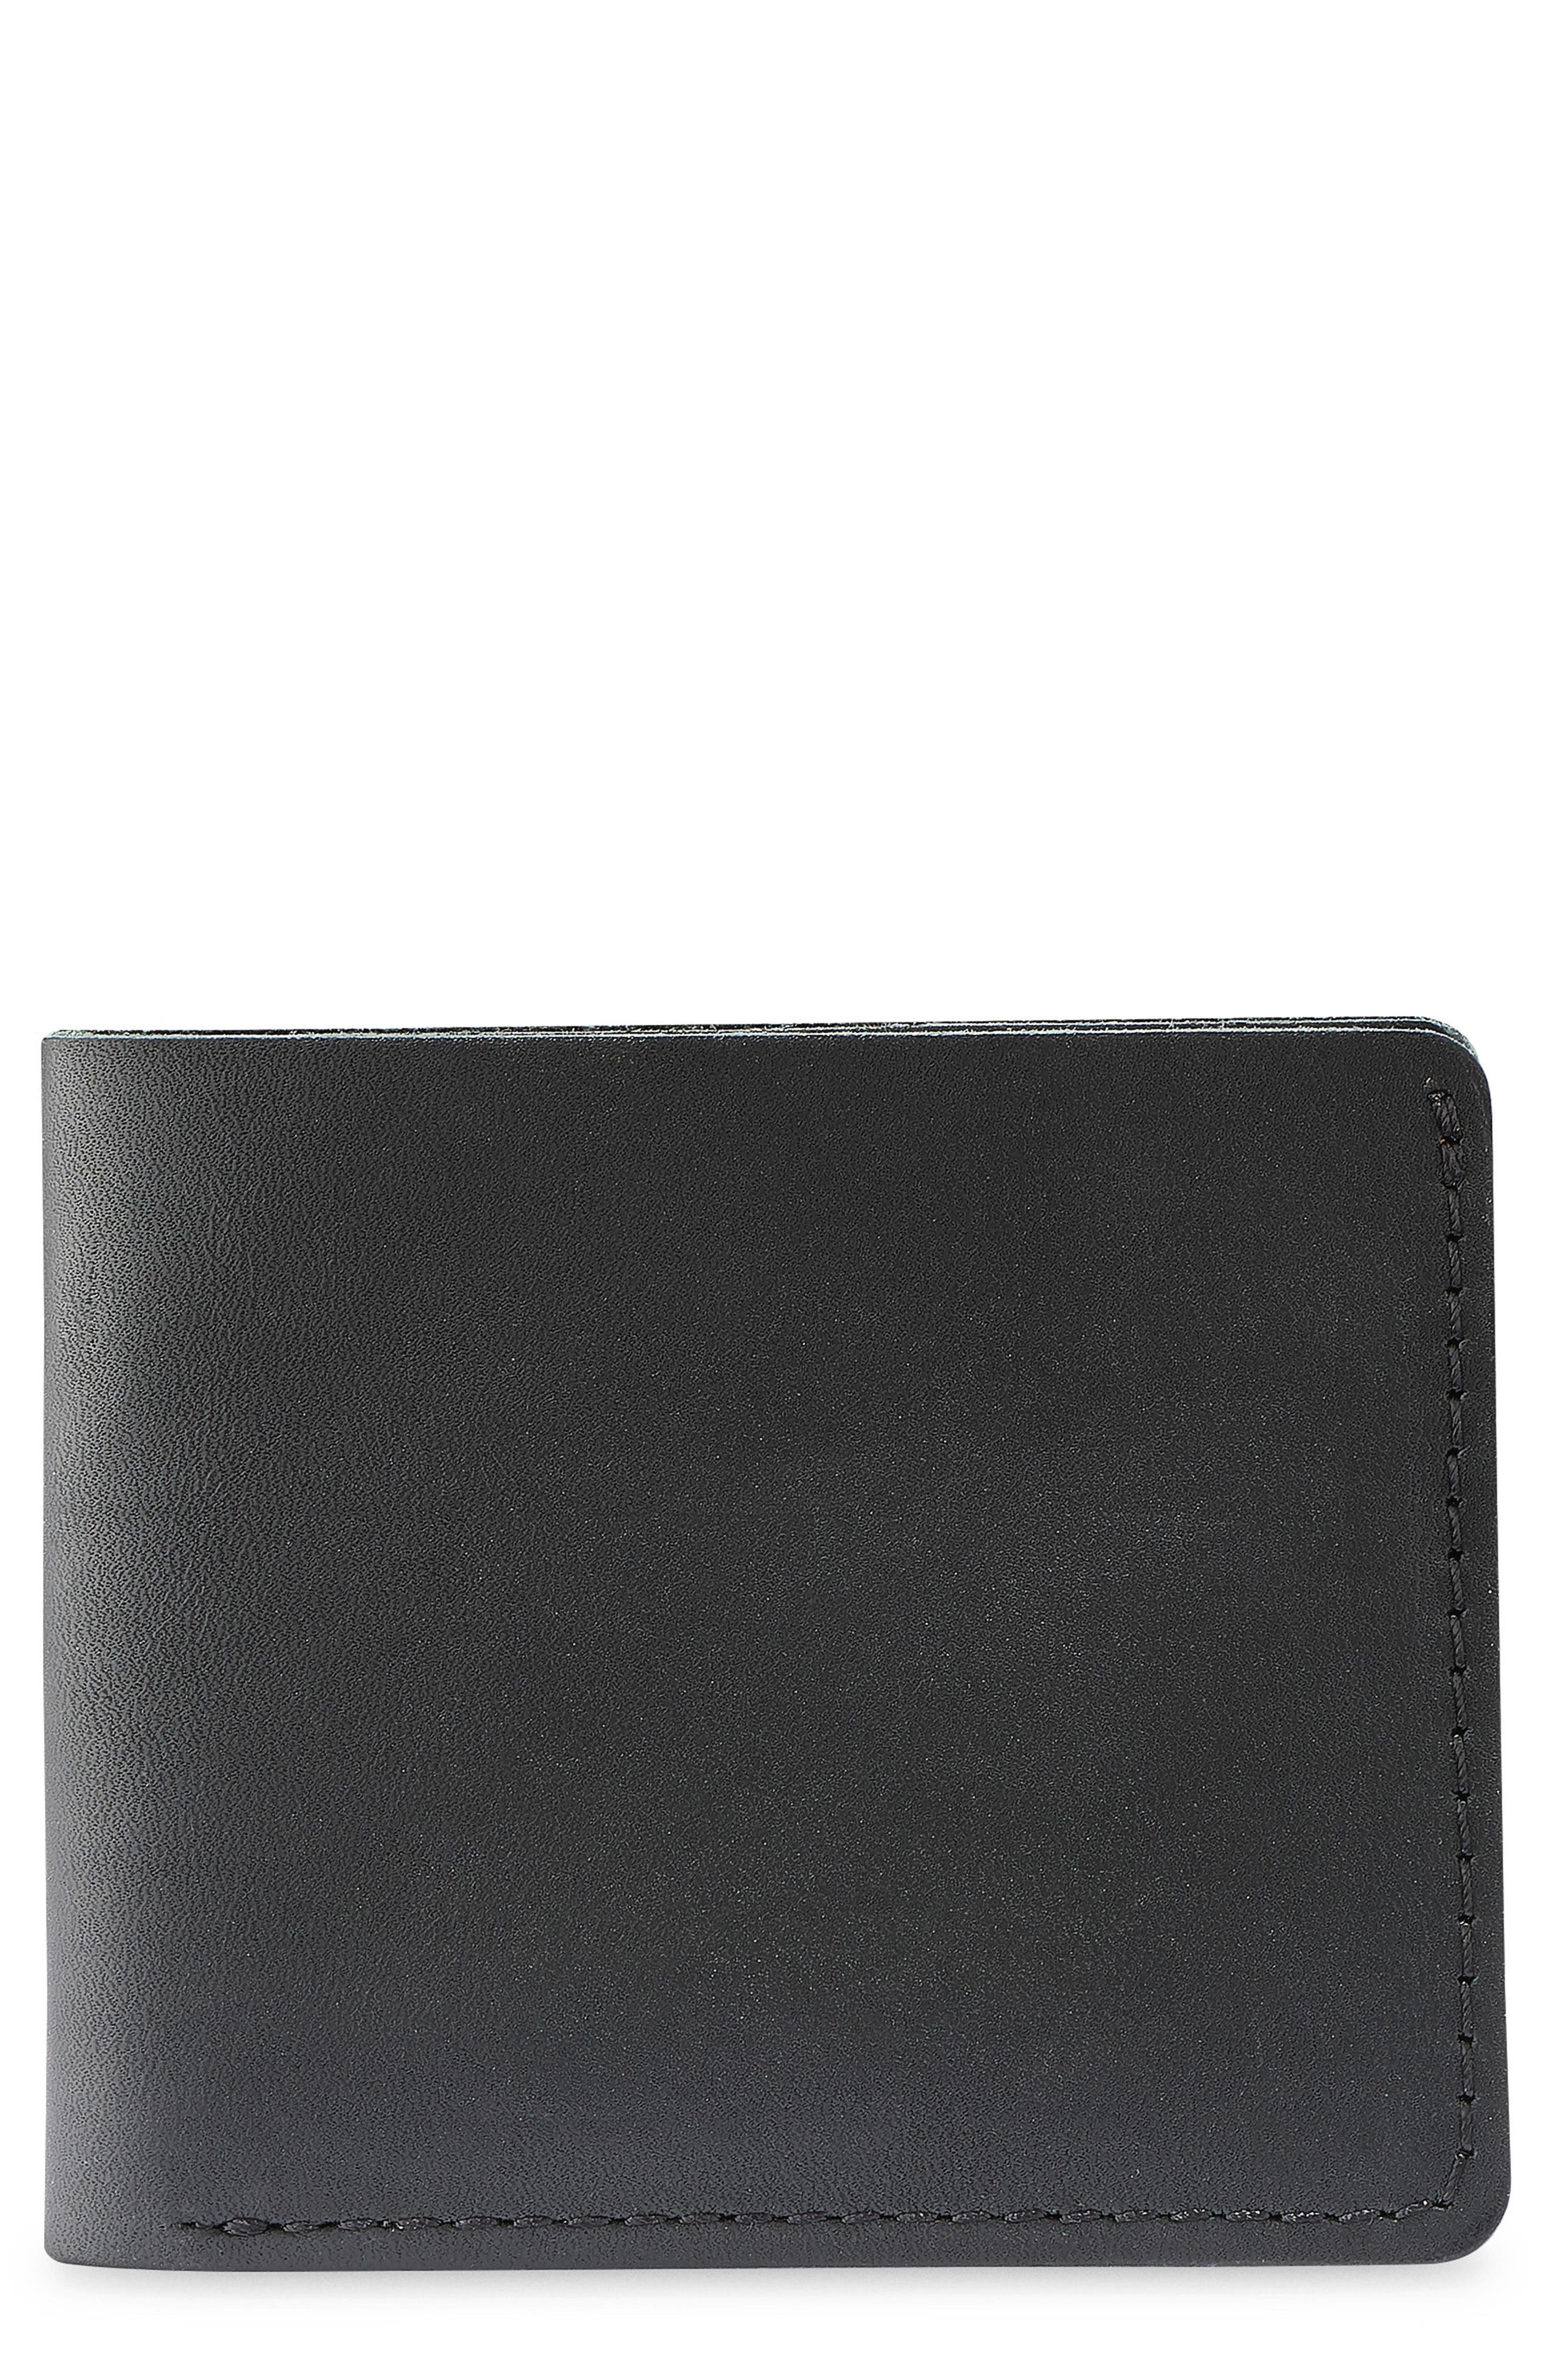 Classic Bifold Leather Wallet,                         Main,                         color, BLACK